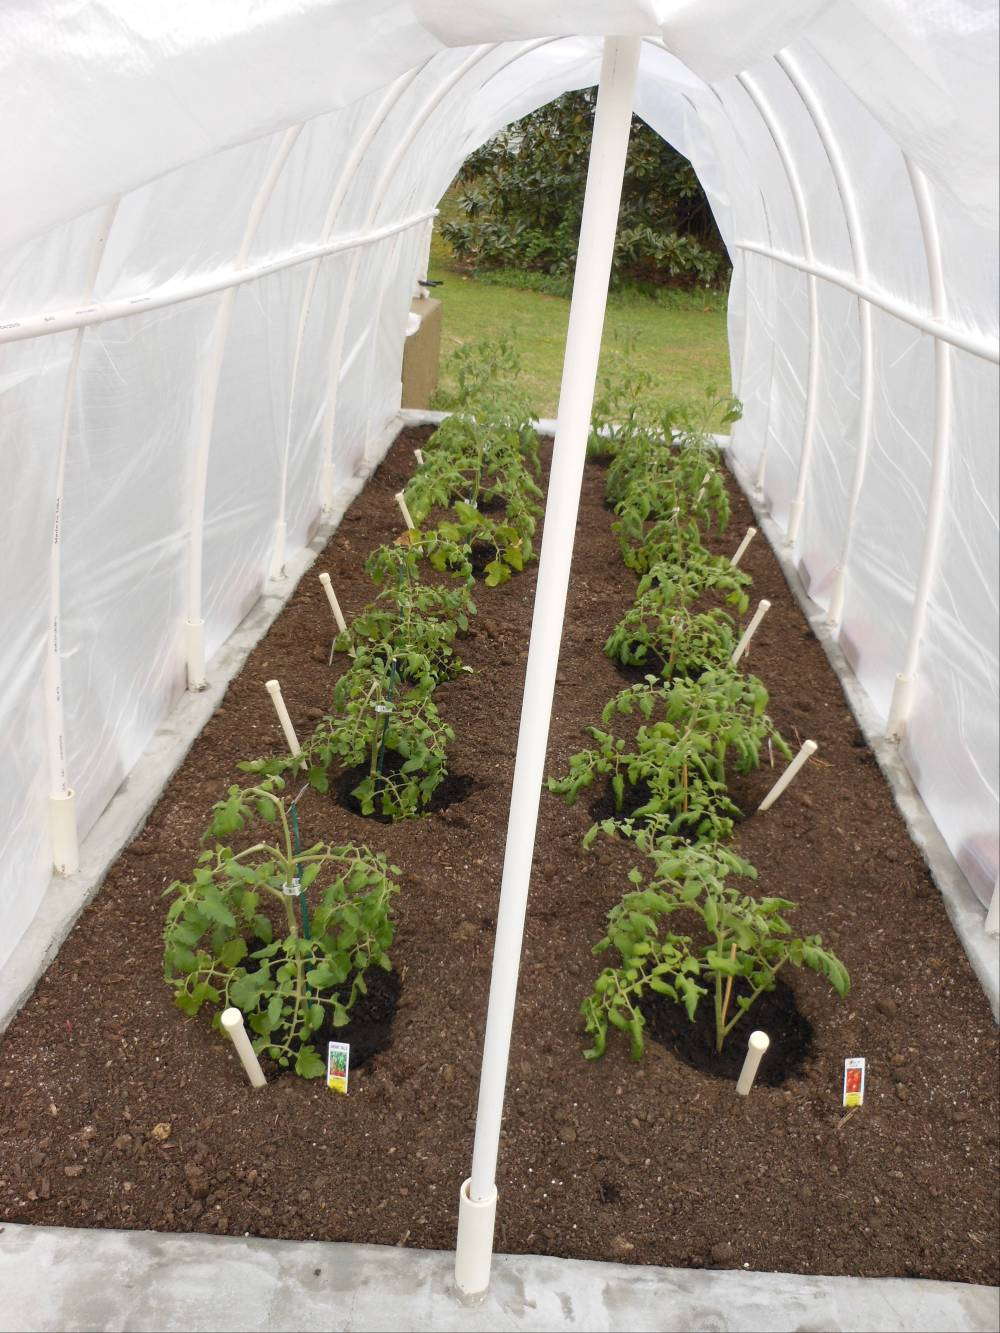 New garden planted with 12 young tomato plants – WaterStick Grow System